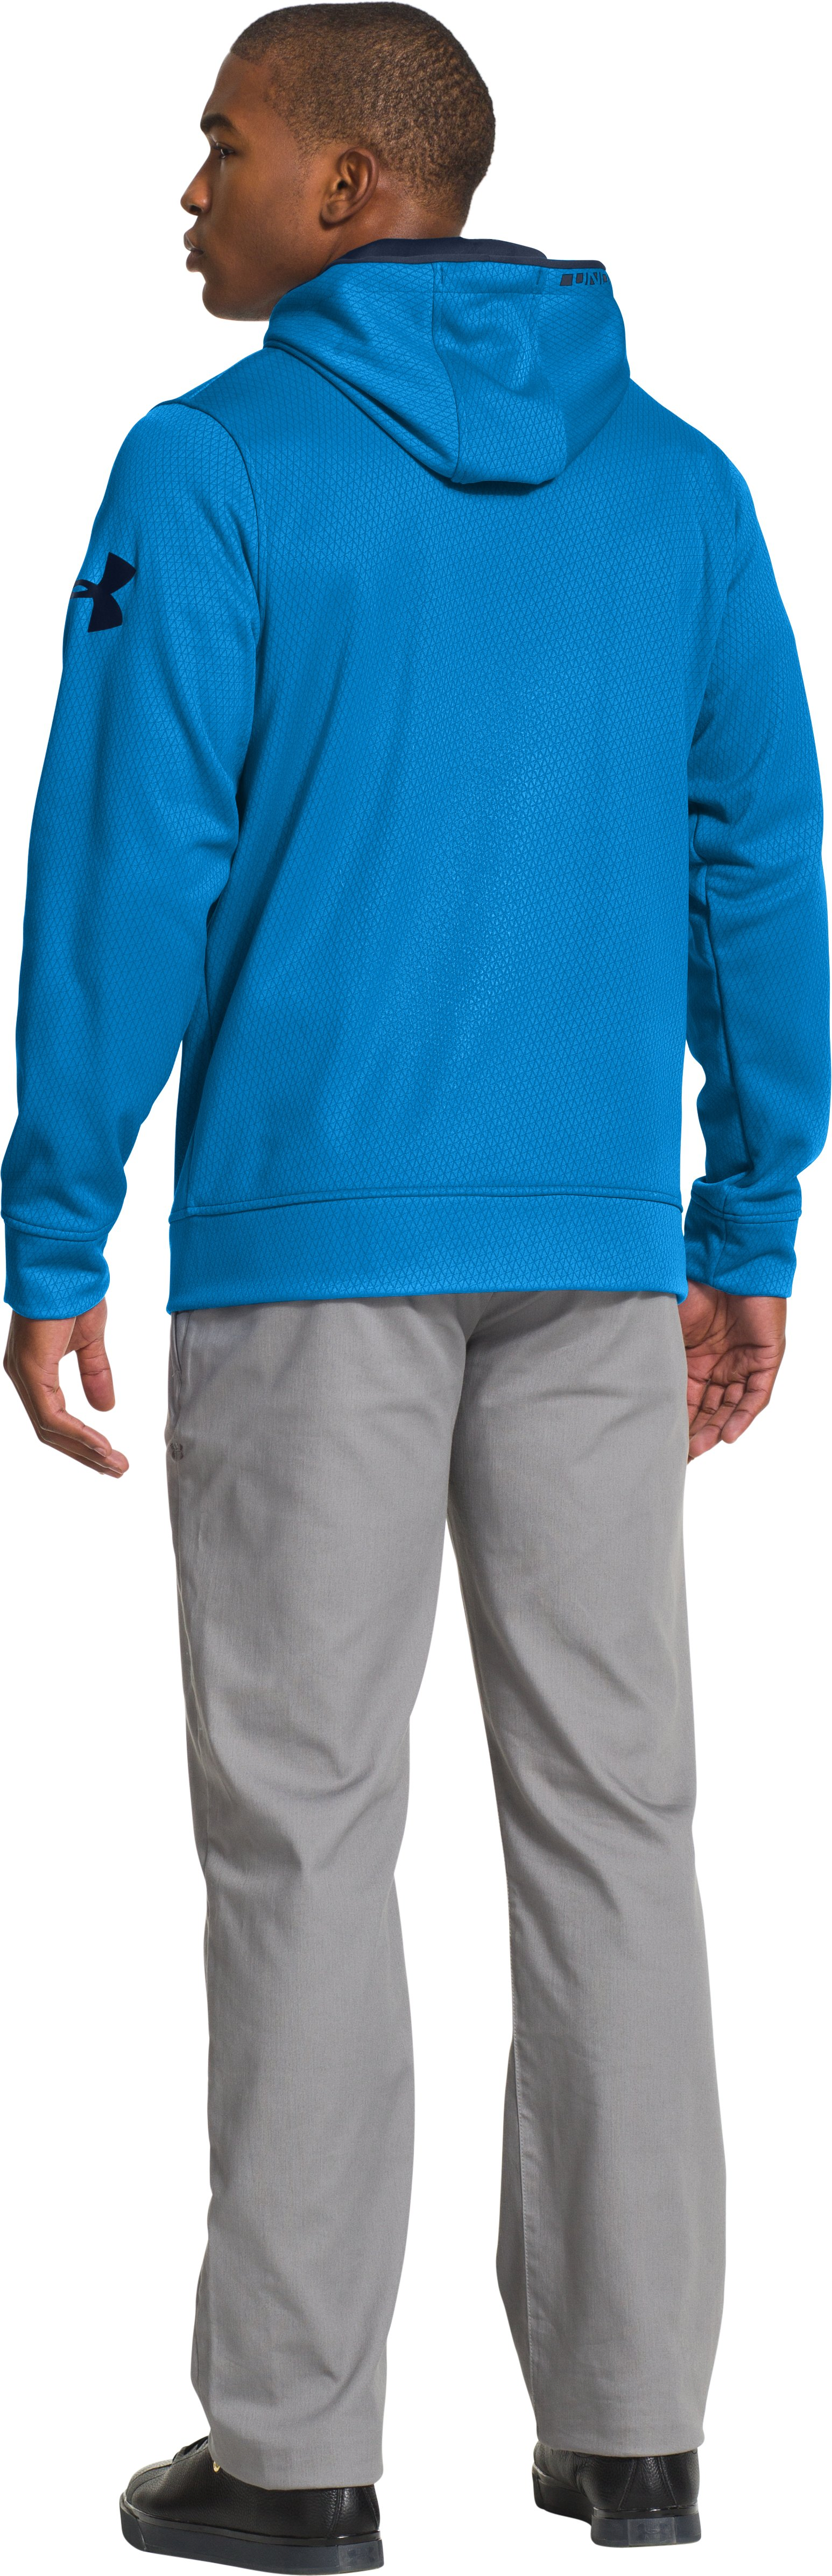 Men's Armour® Fleece Keepyafresh Hoodie, ELECTRIC BLUE, Back